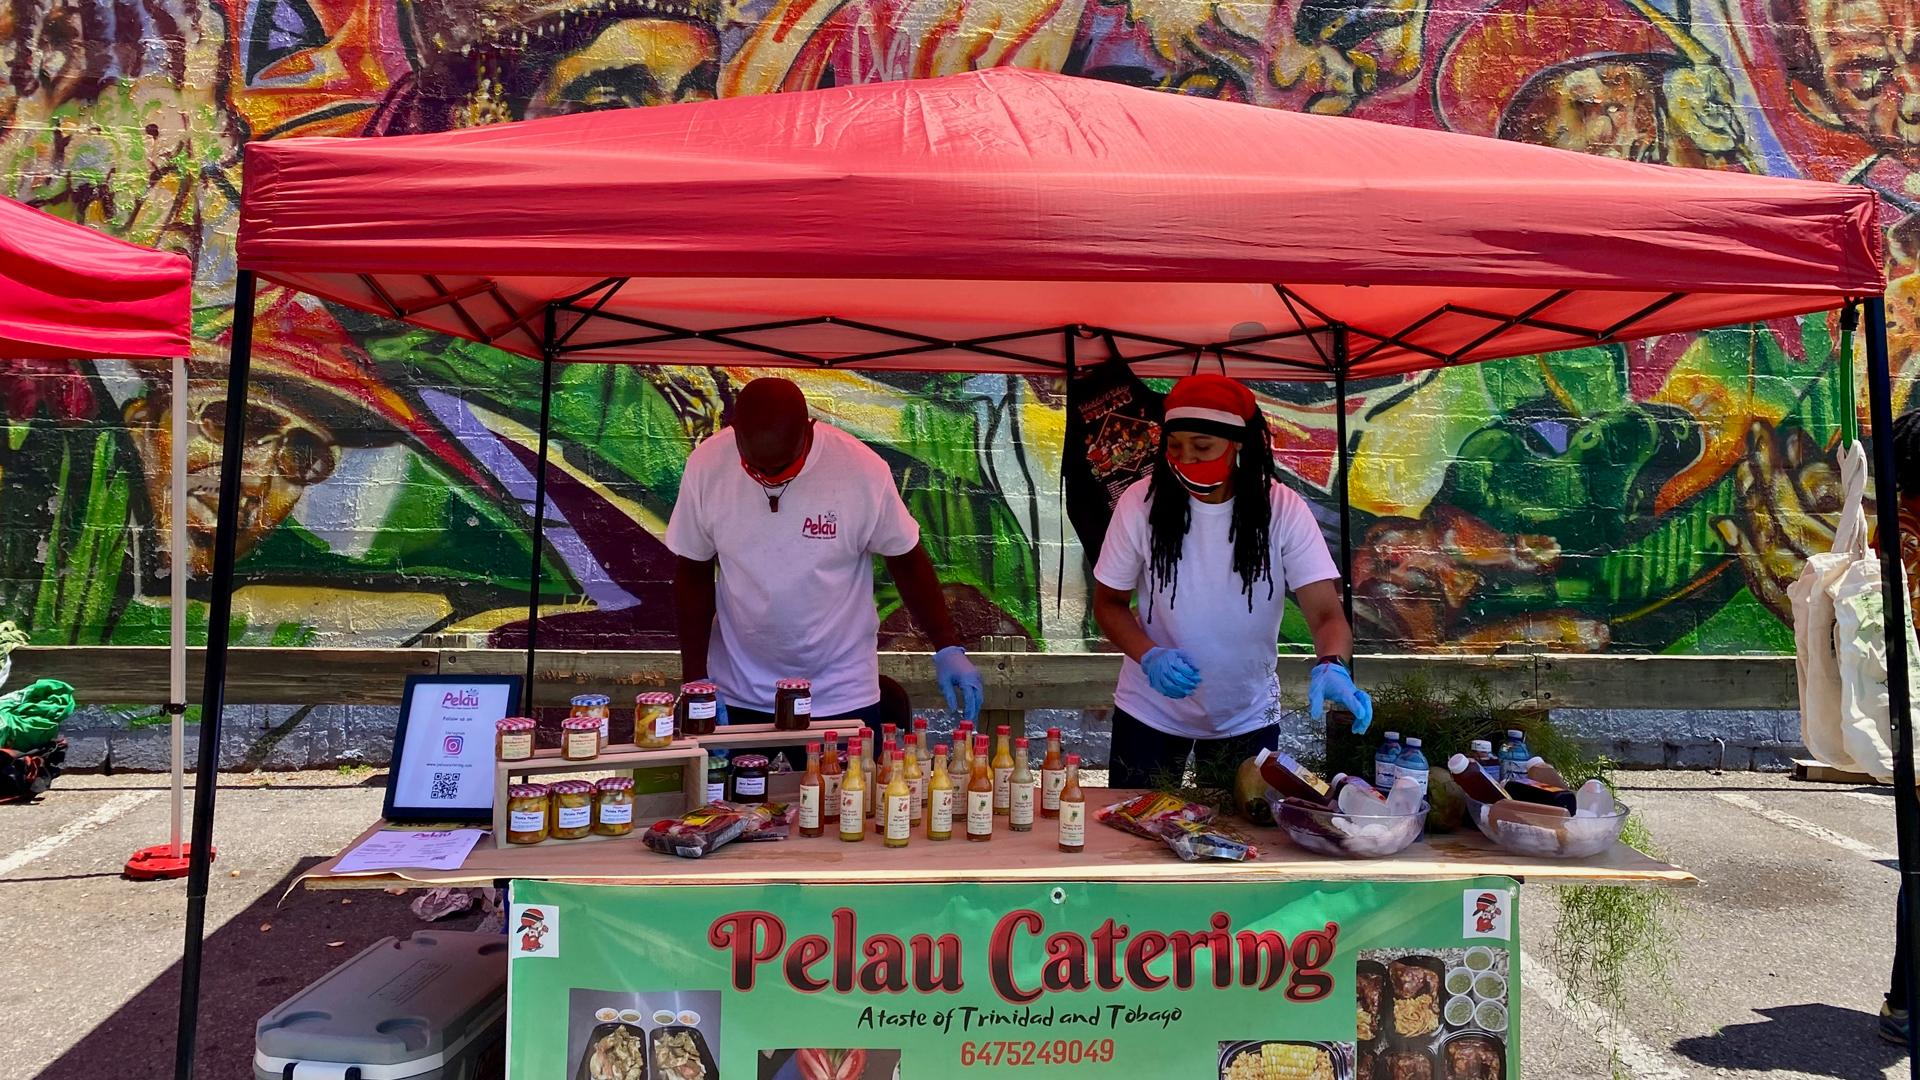 The freshest farmers' markets in Toronto | Pelau Catering at the Afro-Carribean Farmers' Market